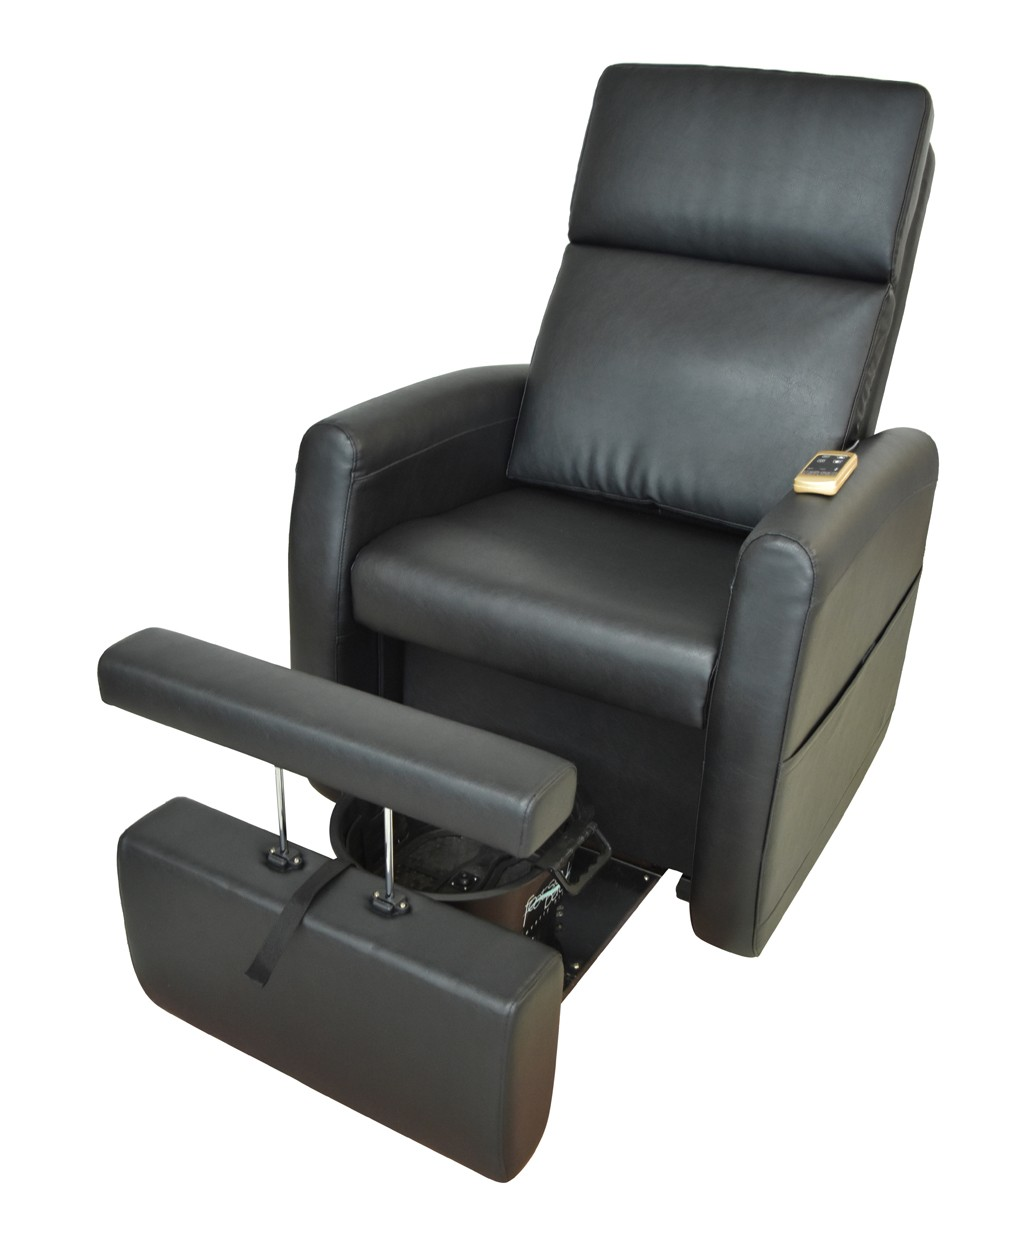 Pibbs ps9 plumbing free massage pedicure chair buy rite for True touch massage experience luxury spa chair